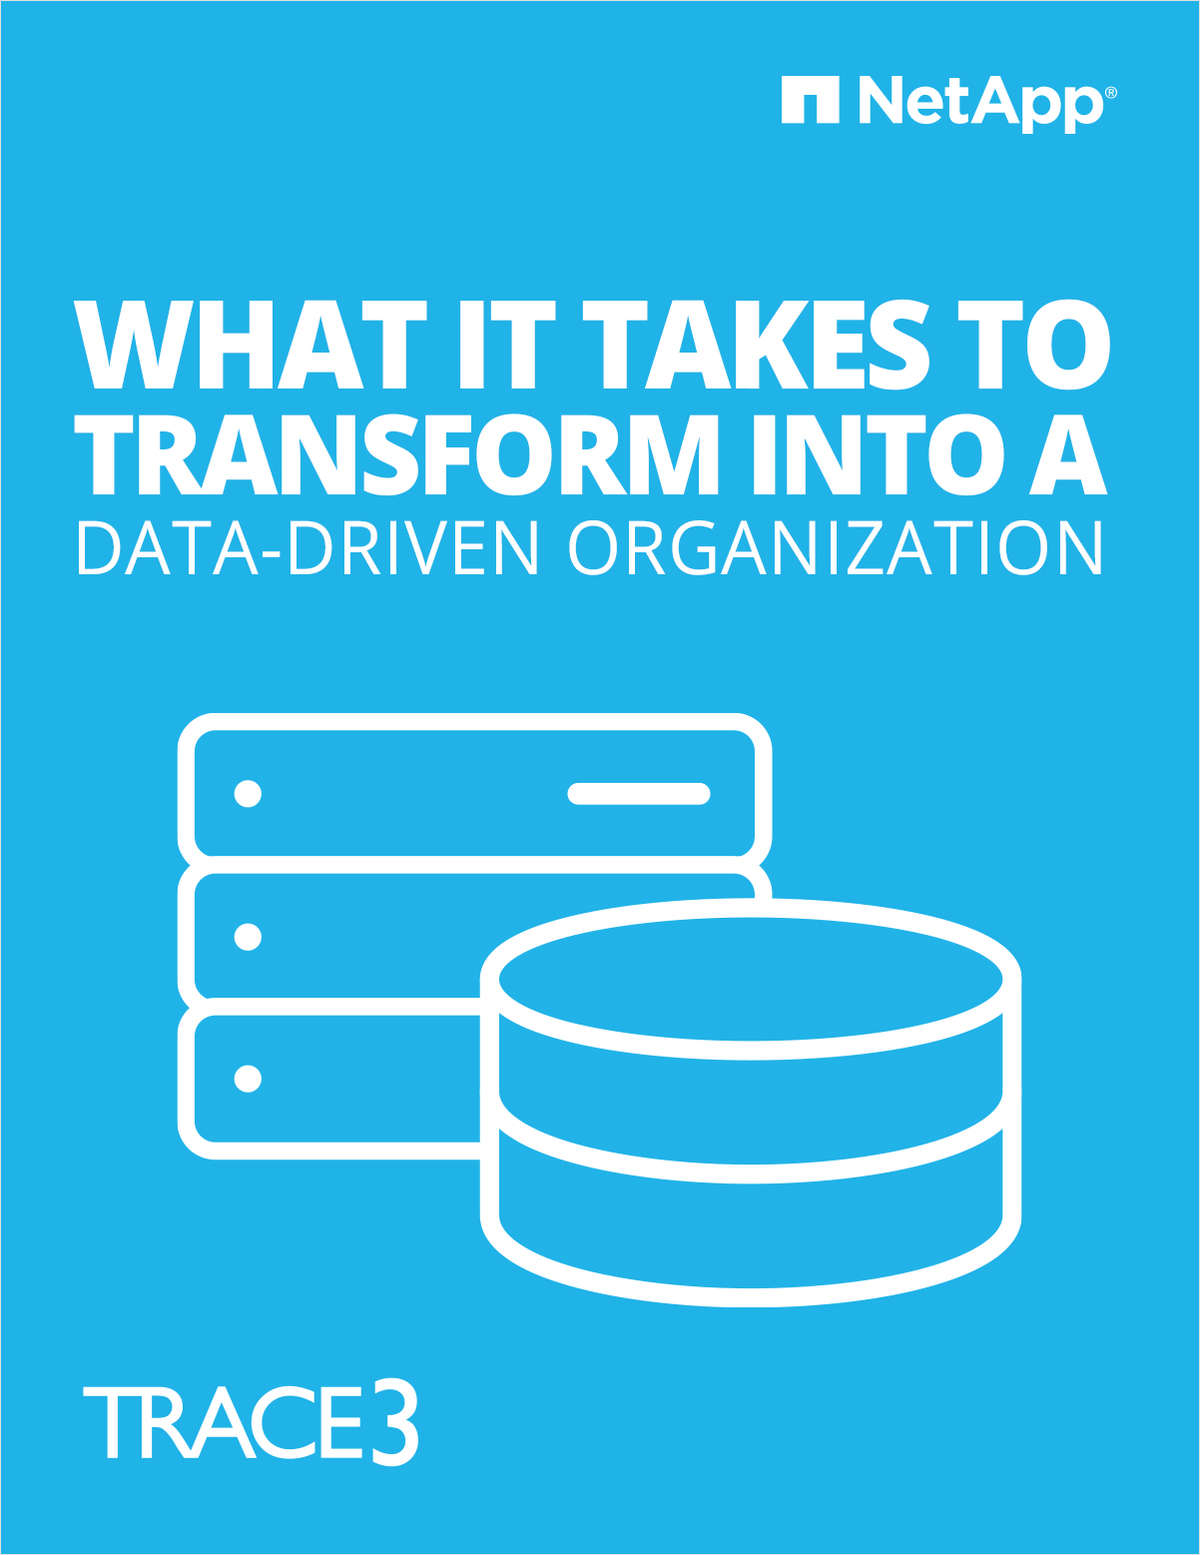 What it takes to transform into a data-driven organization